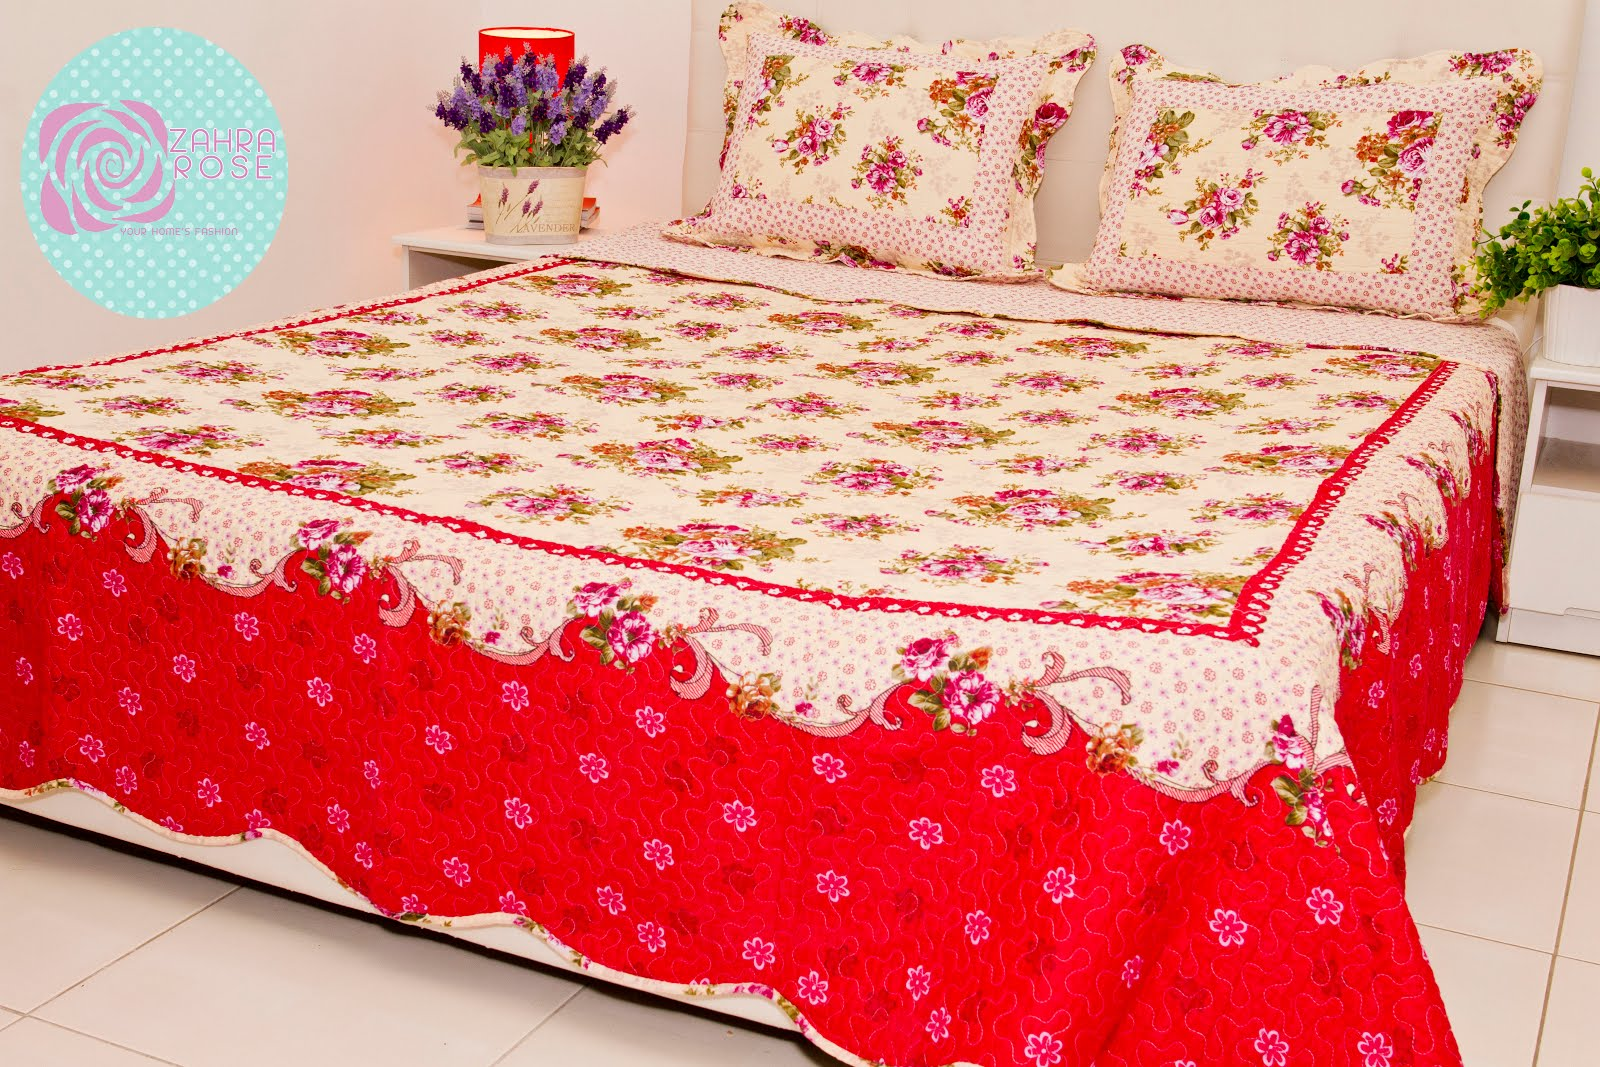 Zahra rose design cotton patchwork bed sheet